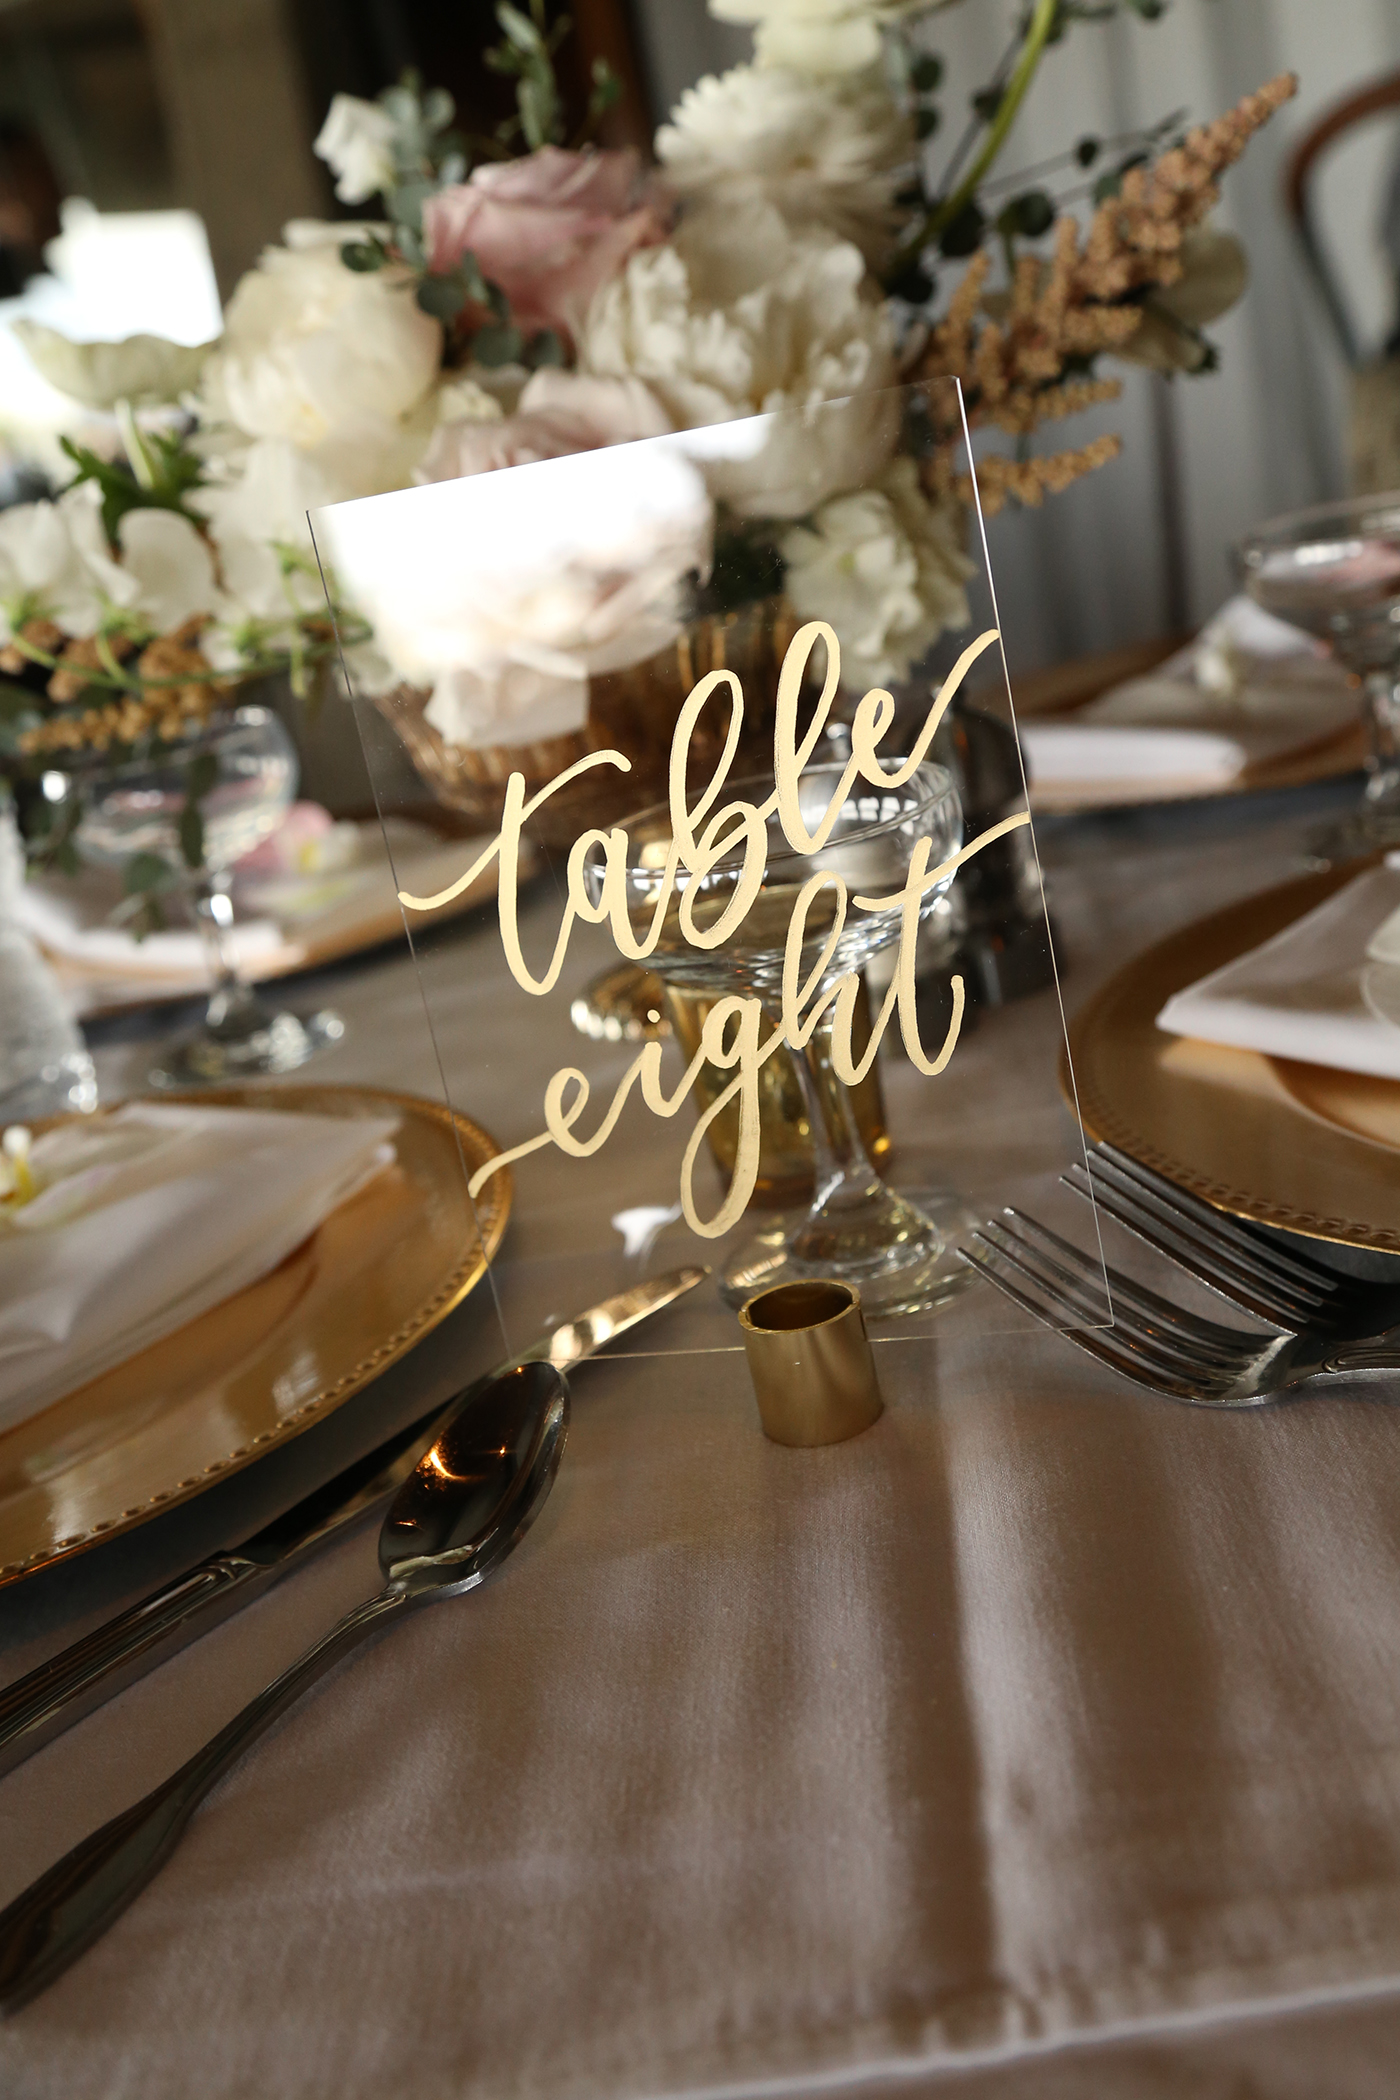 Sam Allen Creates – Acrylic Table Numbers – Photo by Jack Randall